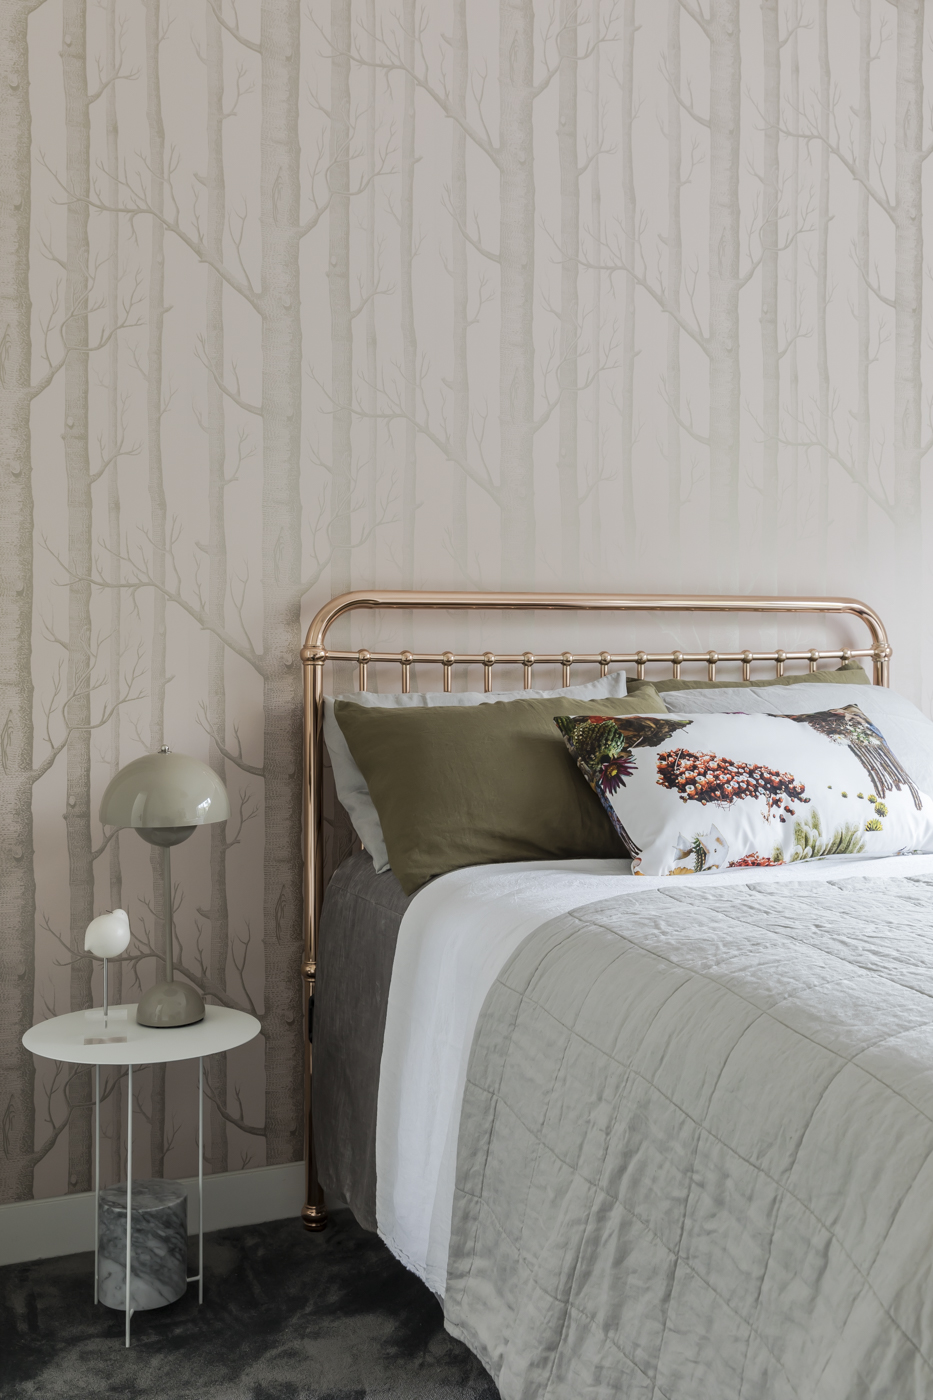 Playing with different patterns brings a sense of whimsy to the girl's bedroom in our    Raglan Street    project. Wallpaper by Cole and Son.